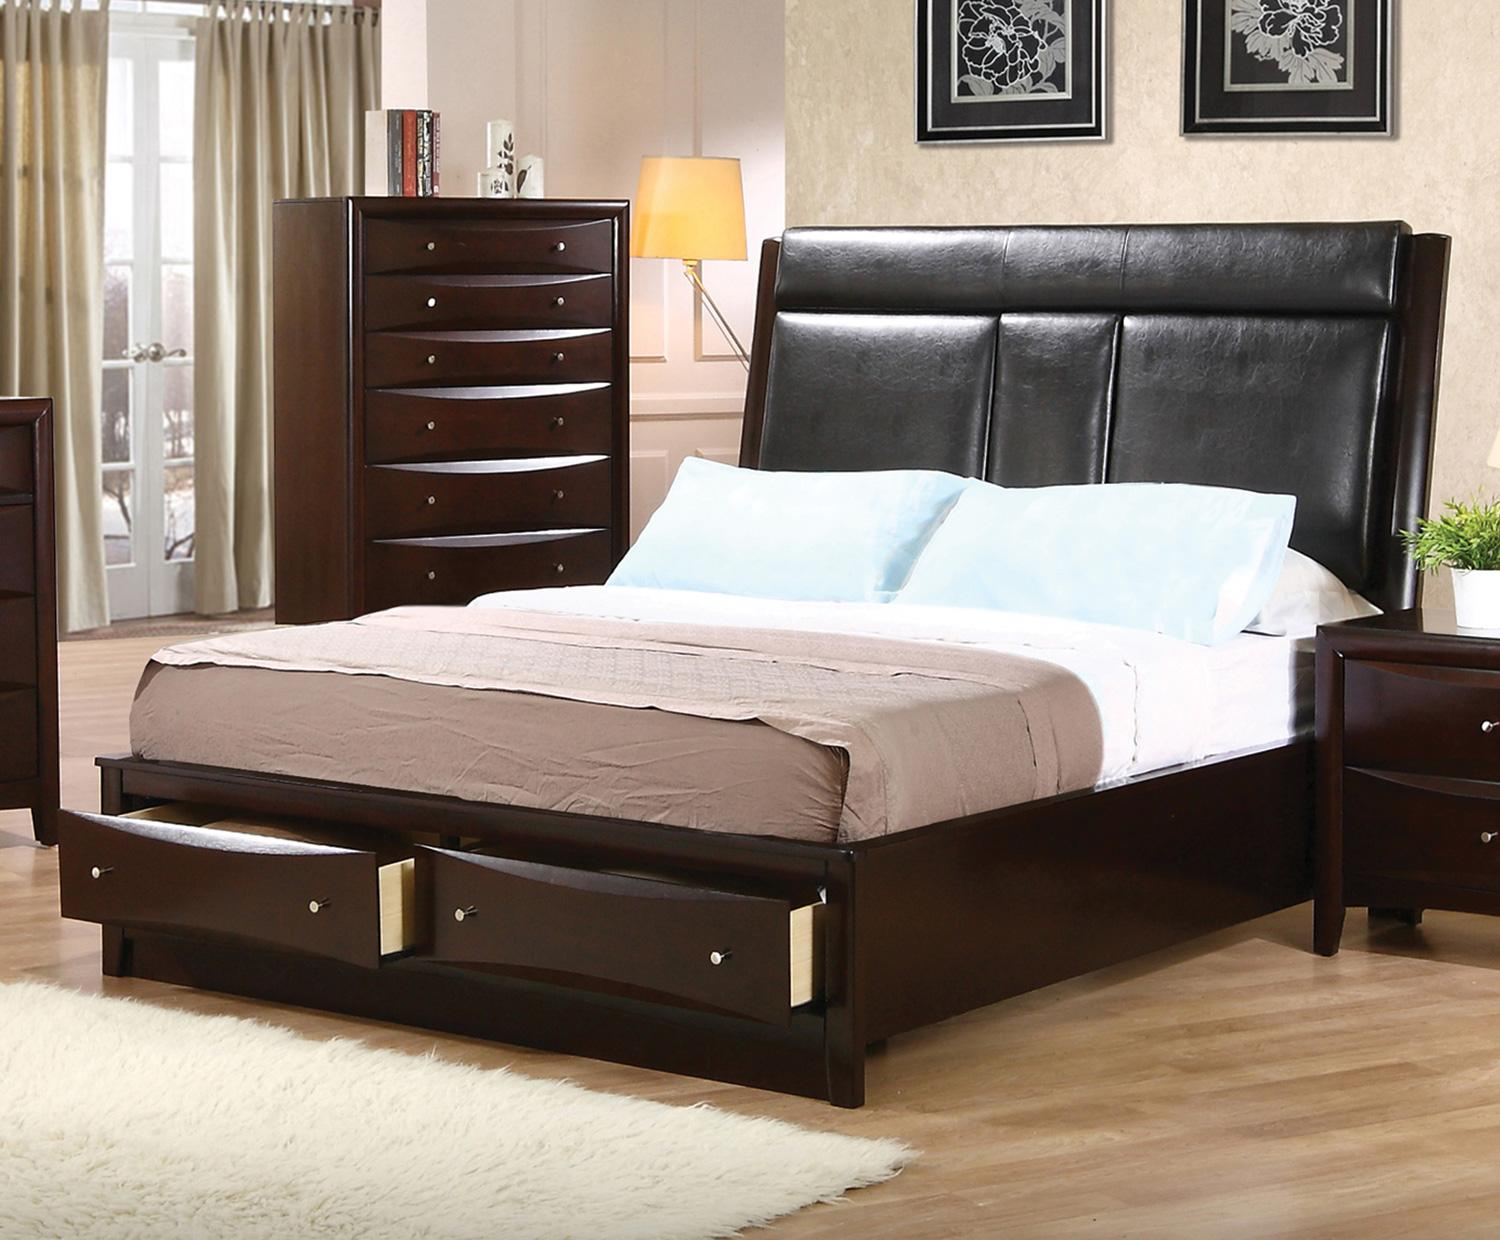 Cheap Bed Frames Dallas Texas